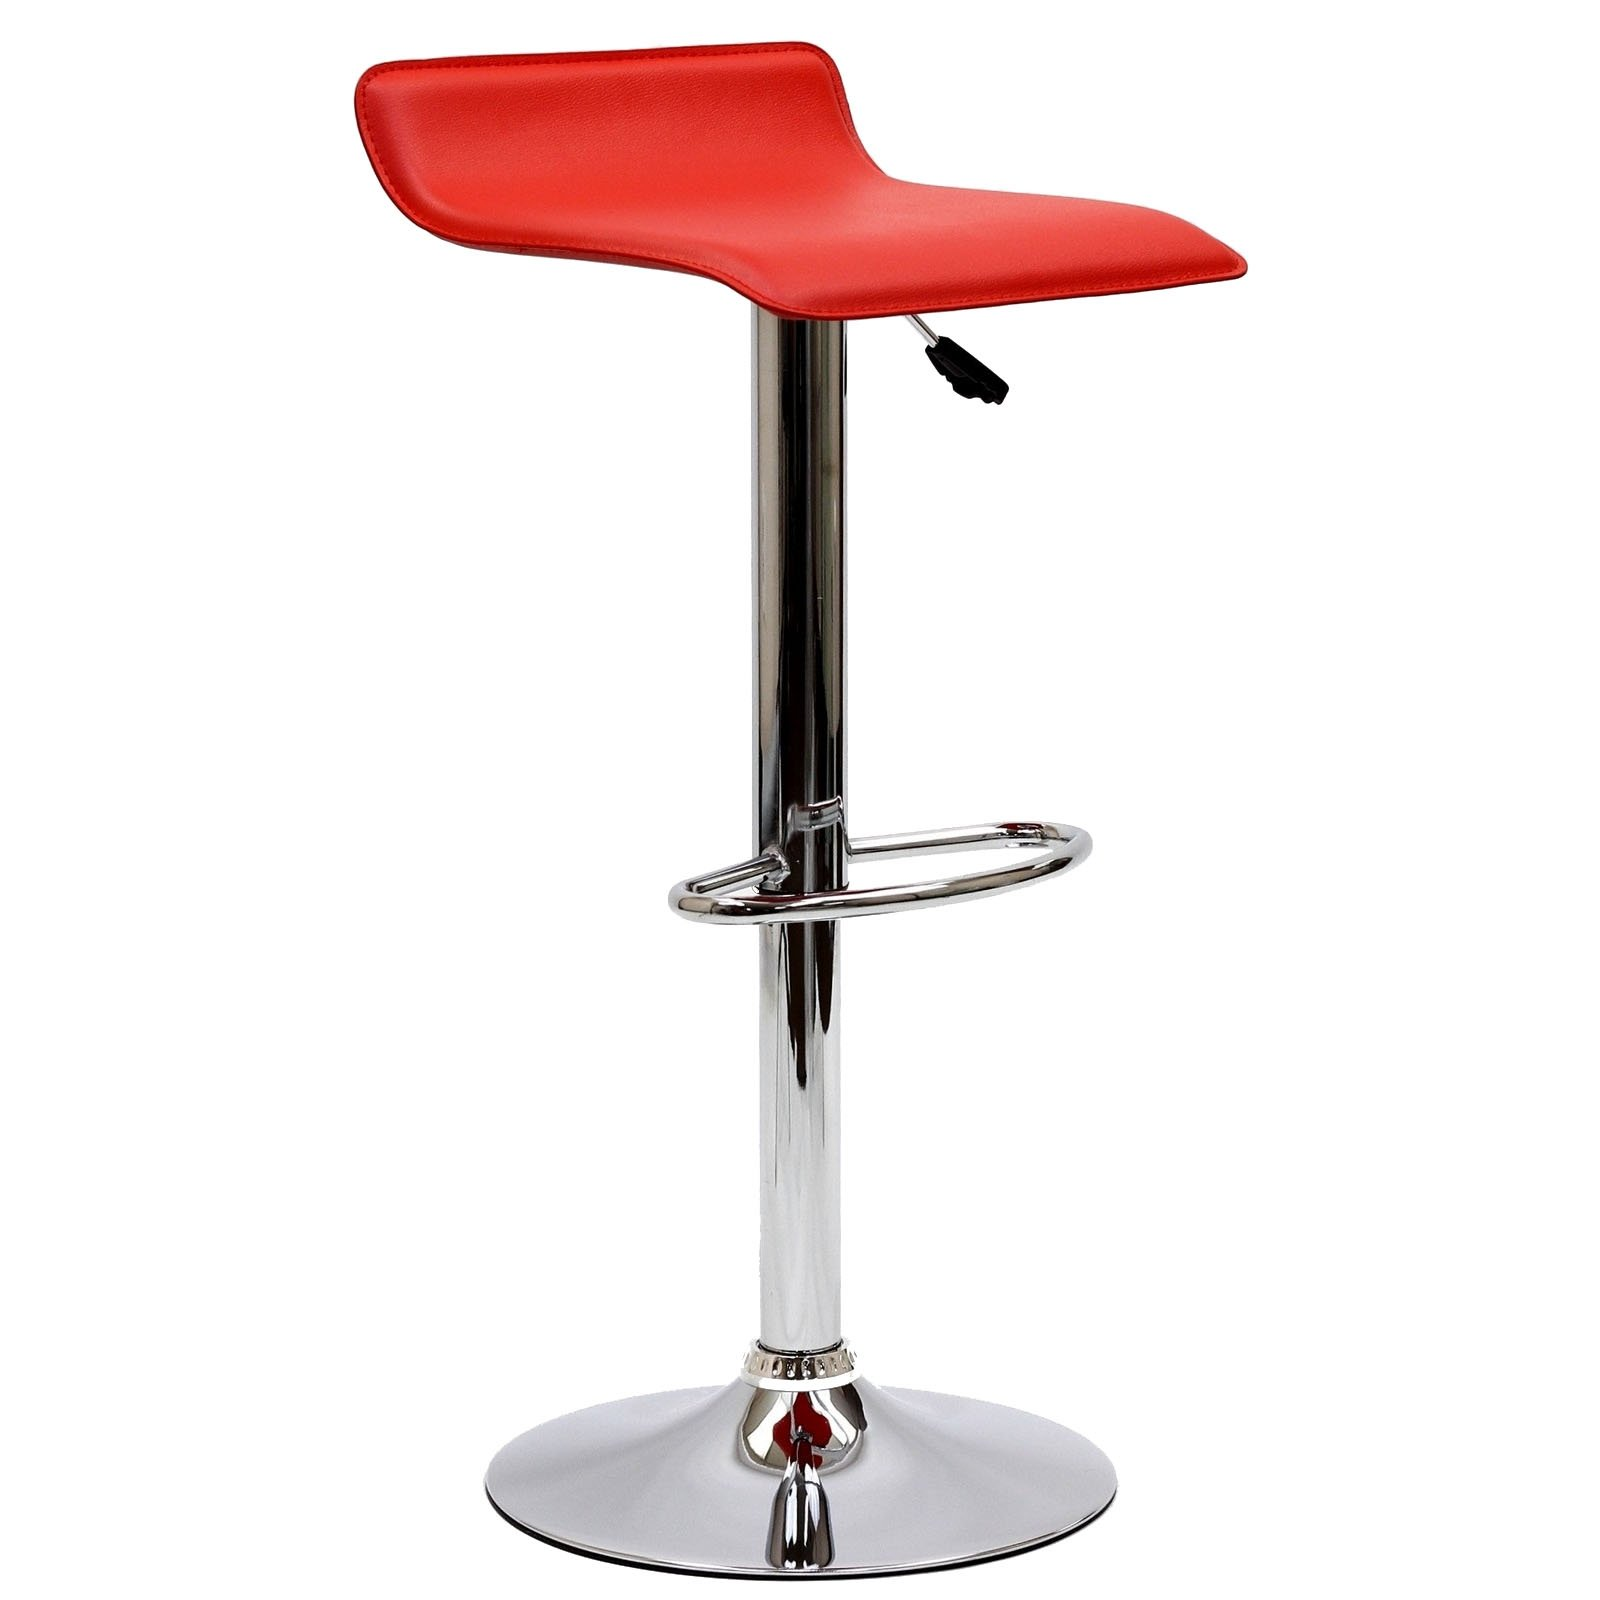 Modway Gloria Retro Modern Faux Leather Bar Stools in Red by Modway (Image #1)